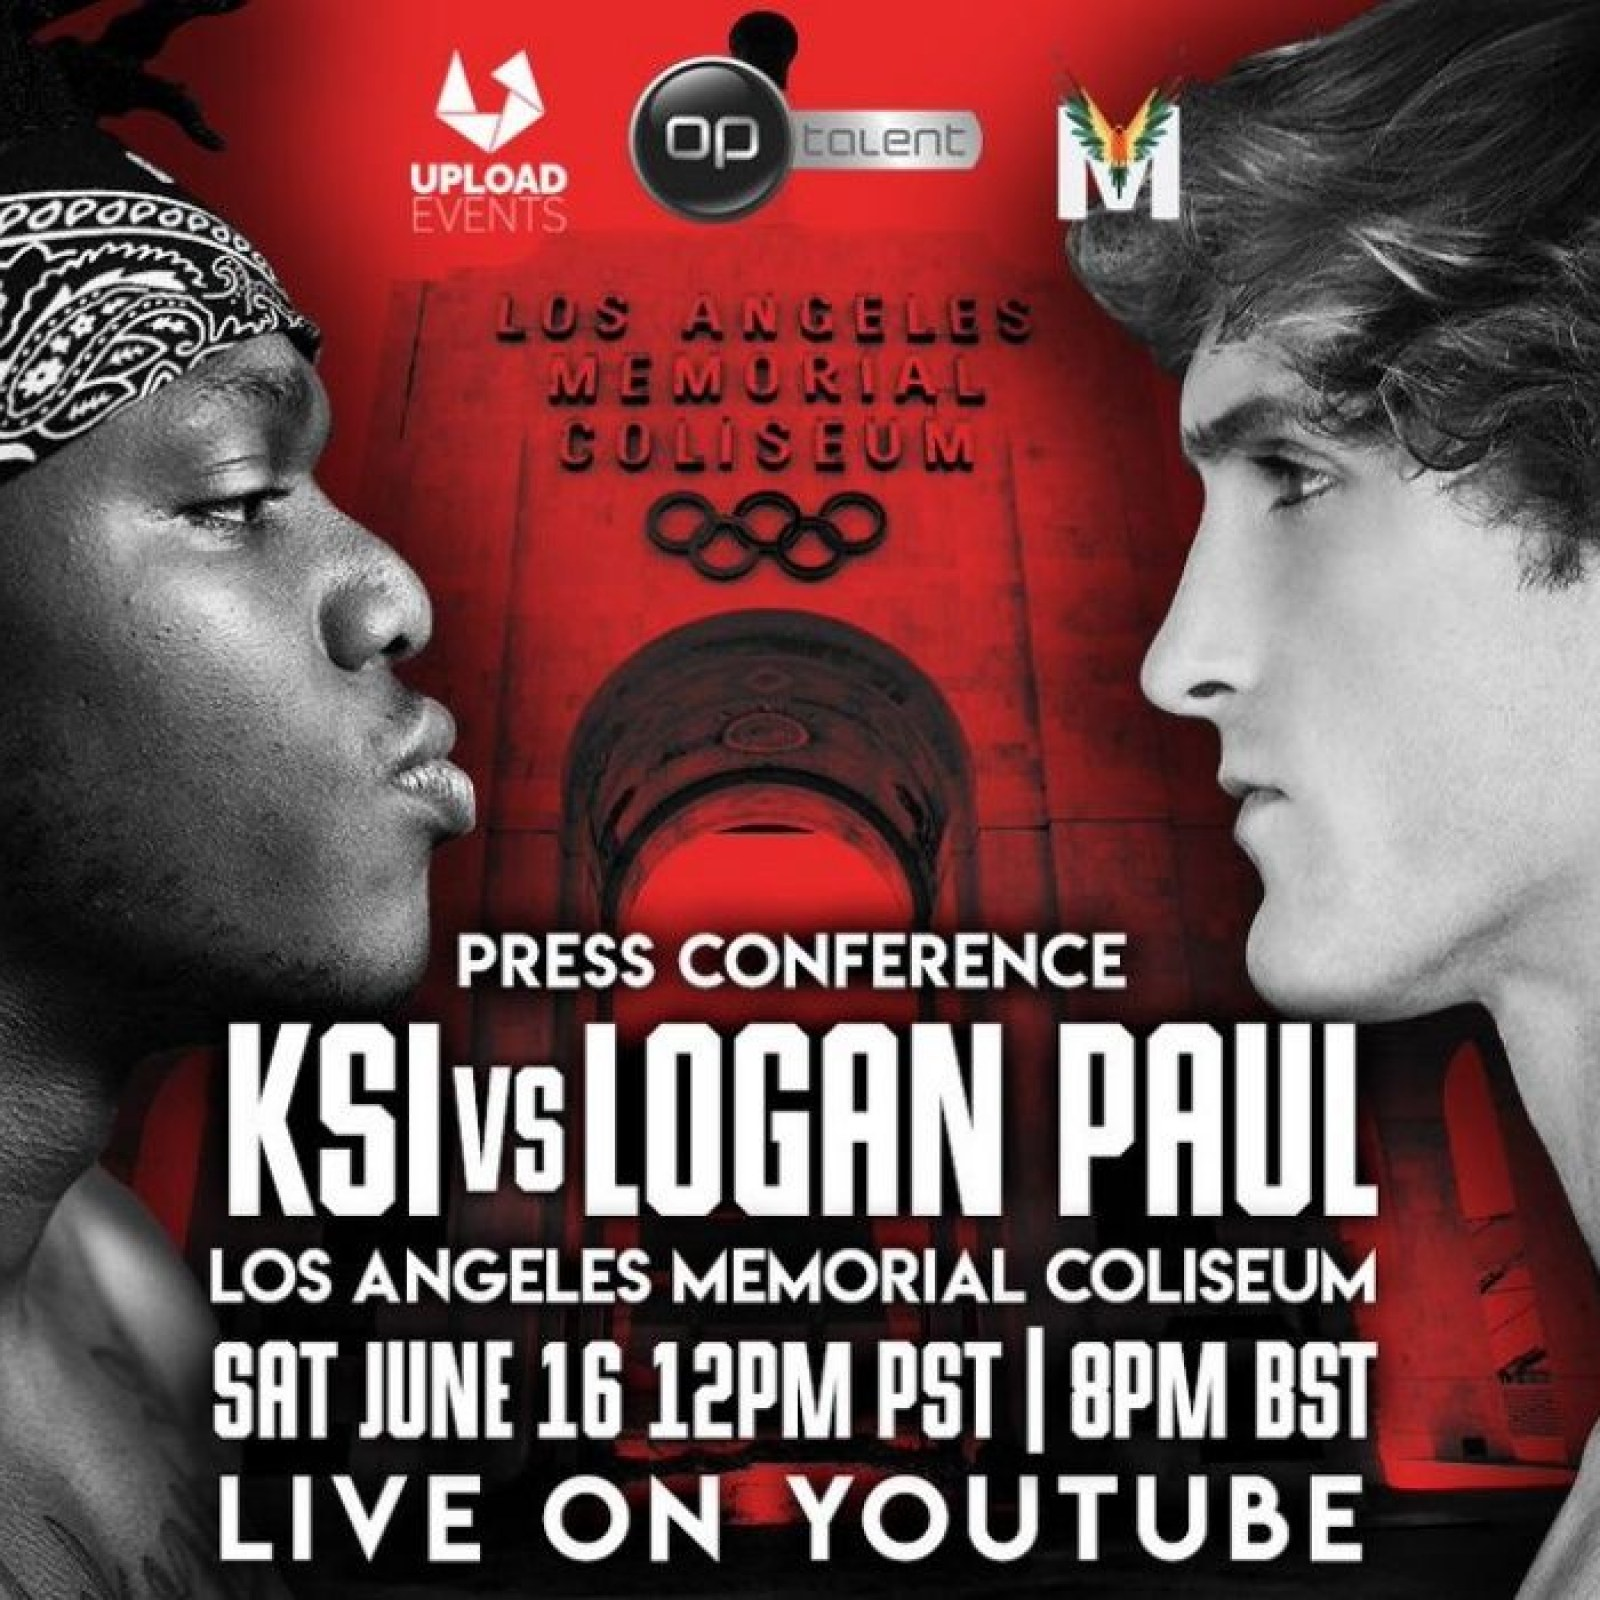 Ksi And Logan Paul Fight Where To Watch